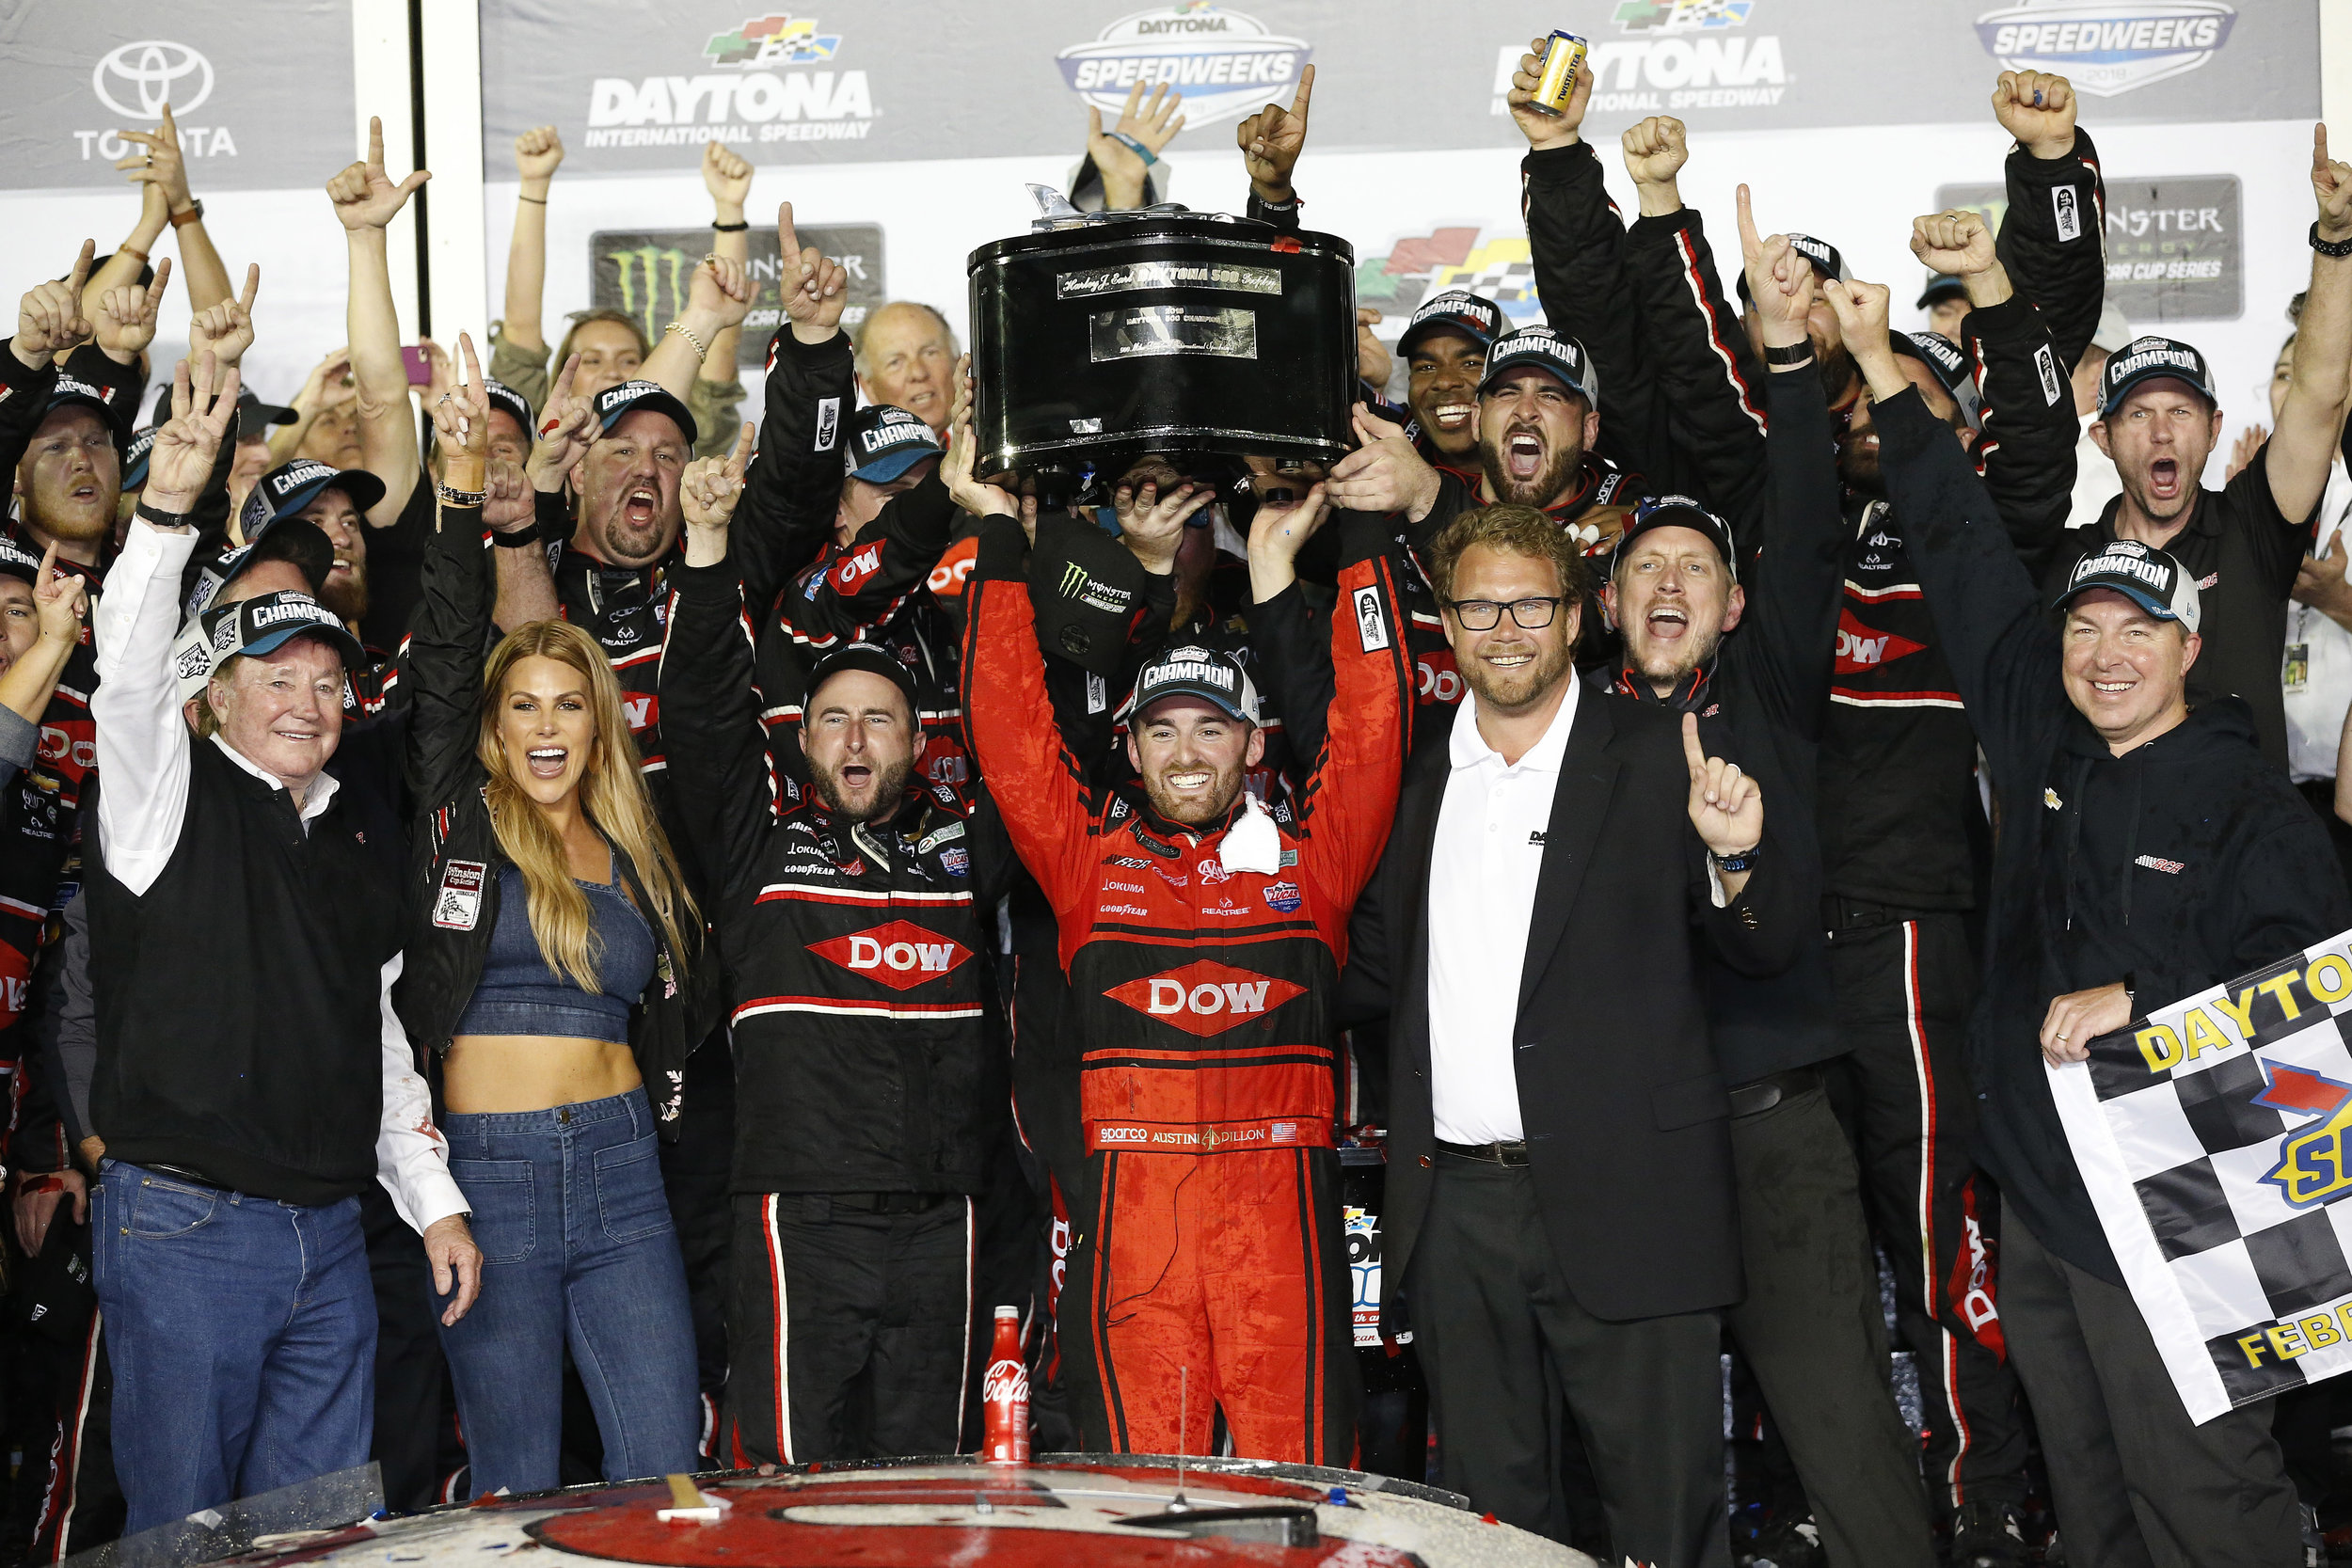 Austin Dillon in Victory Lane / Daytona 500 / 2018